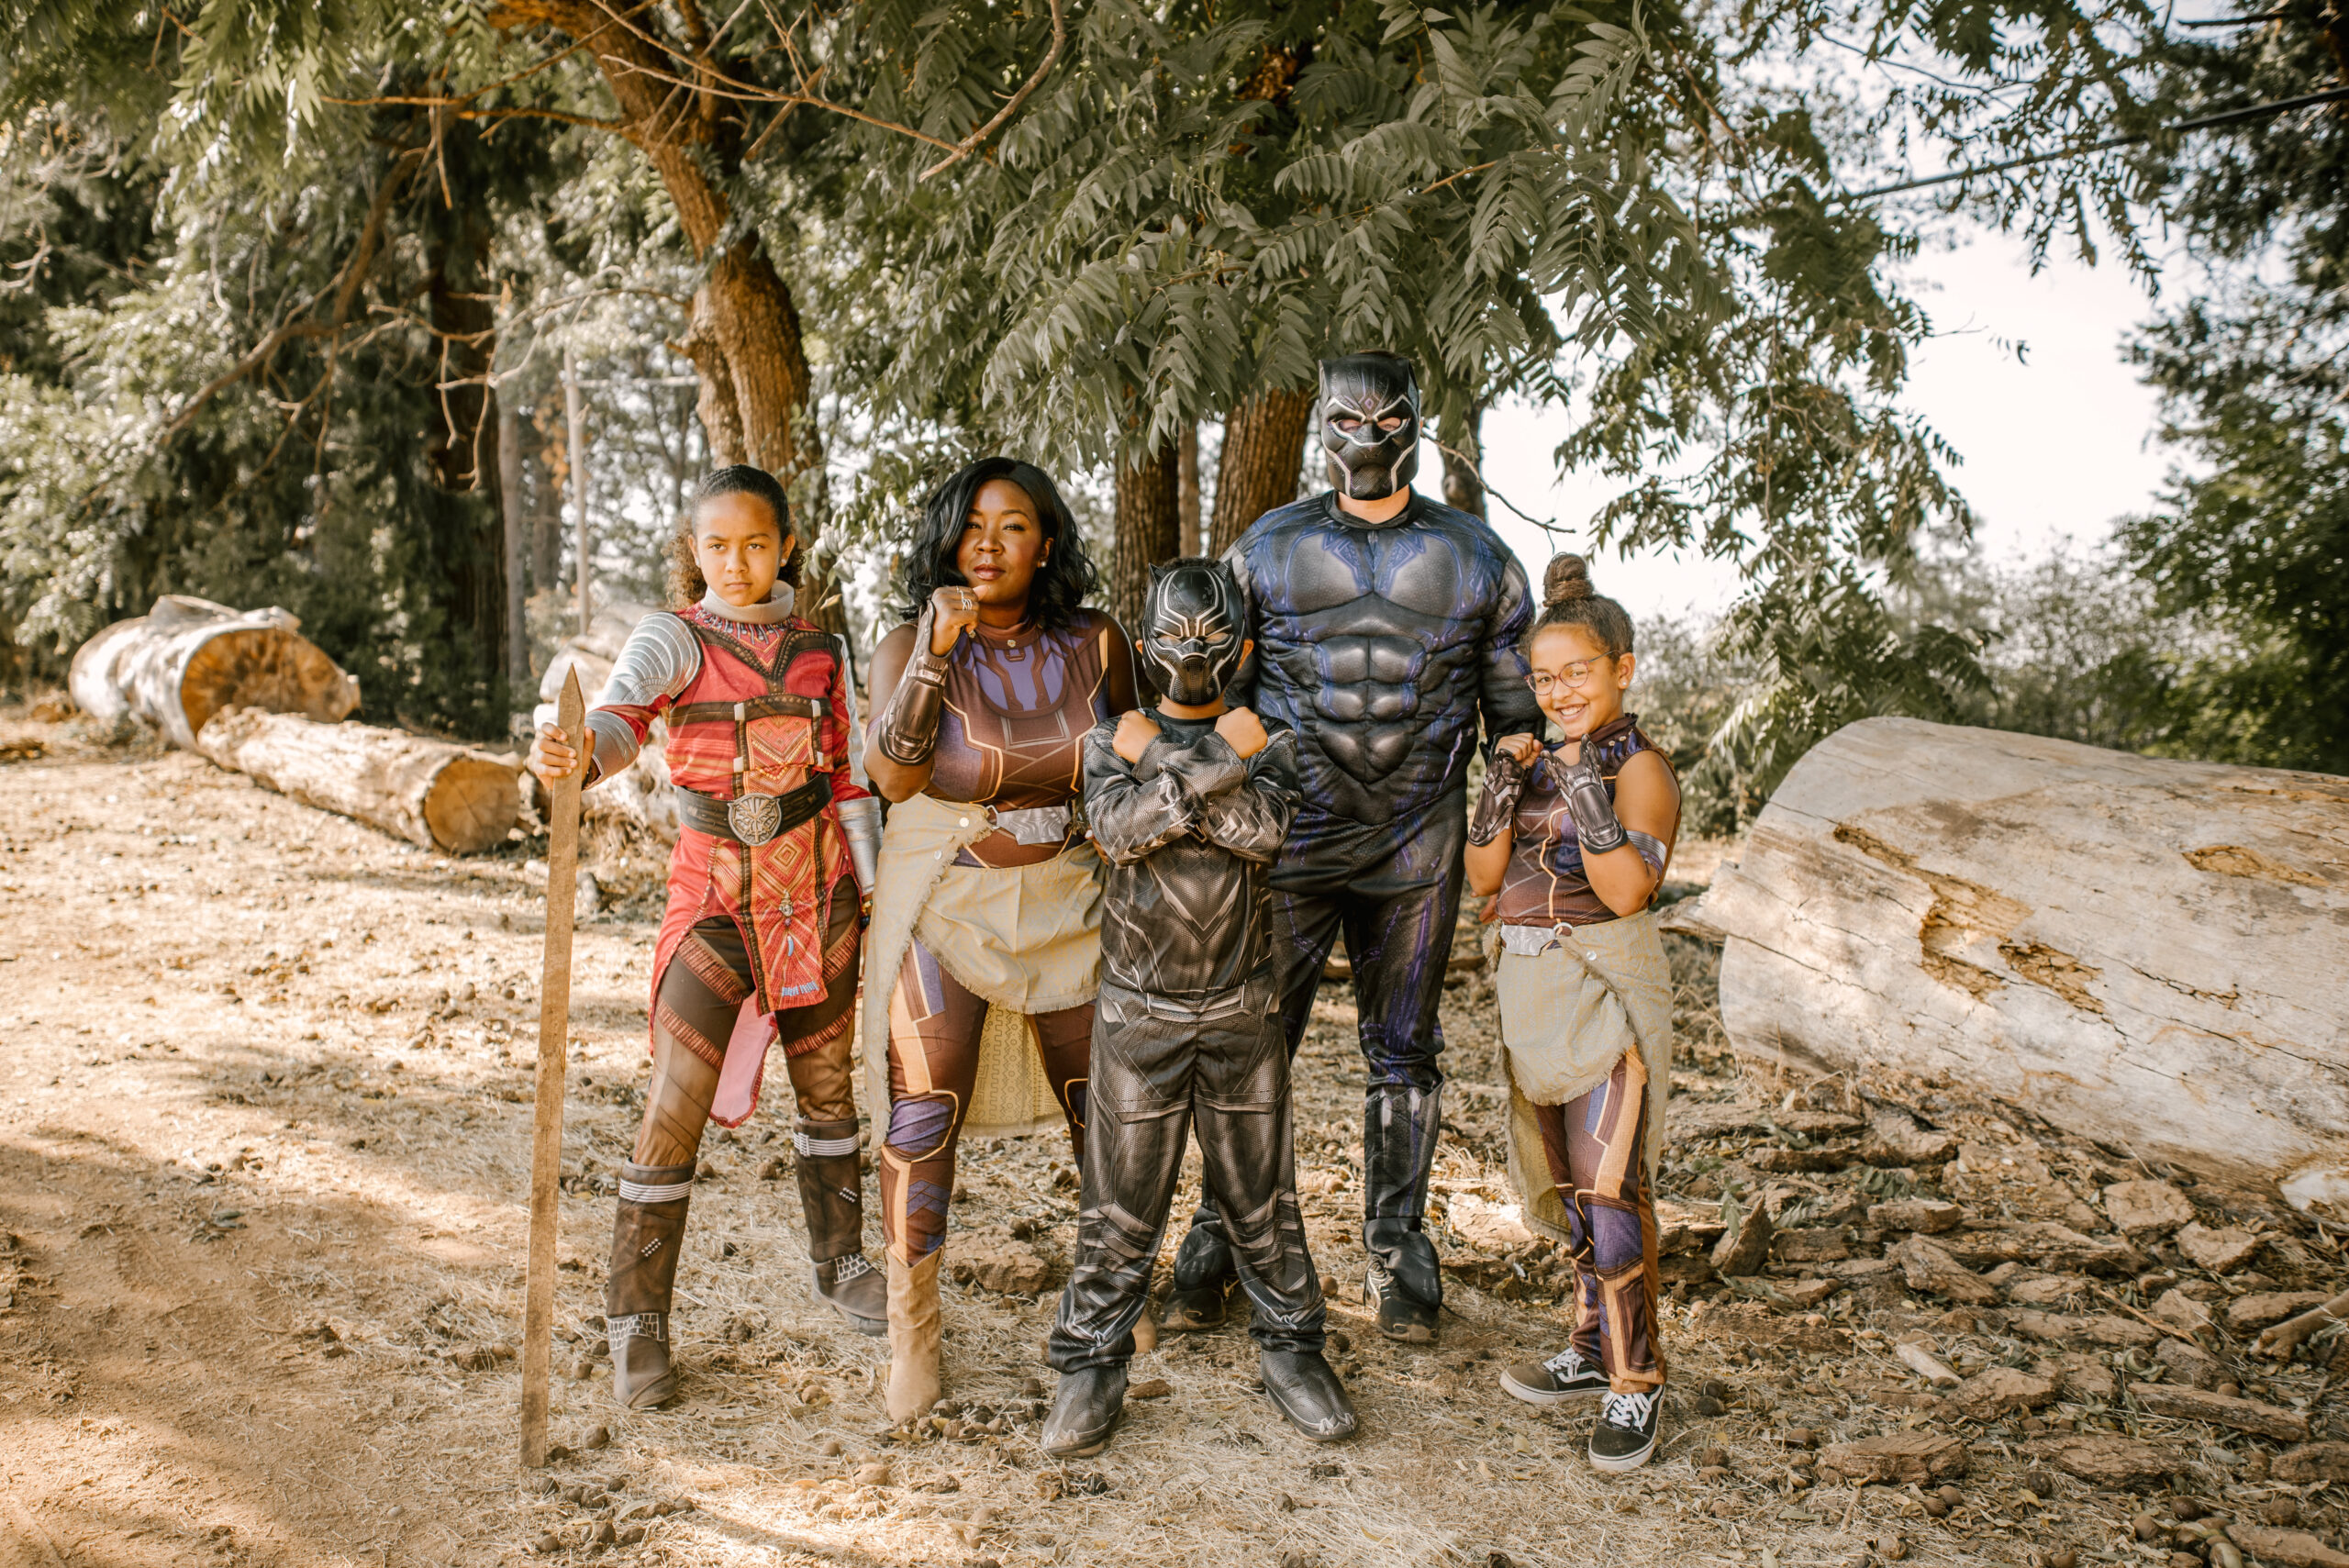 Ruthie Ridley Blog Ridley Family Halloween Costumes 2020